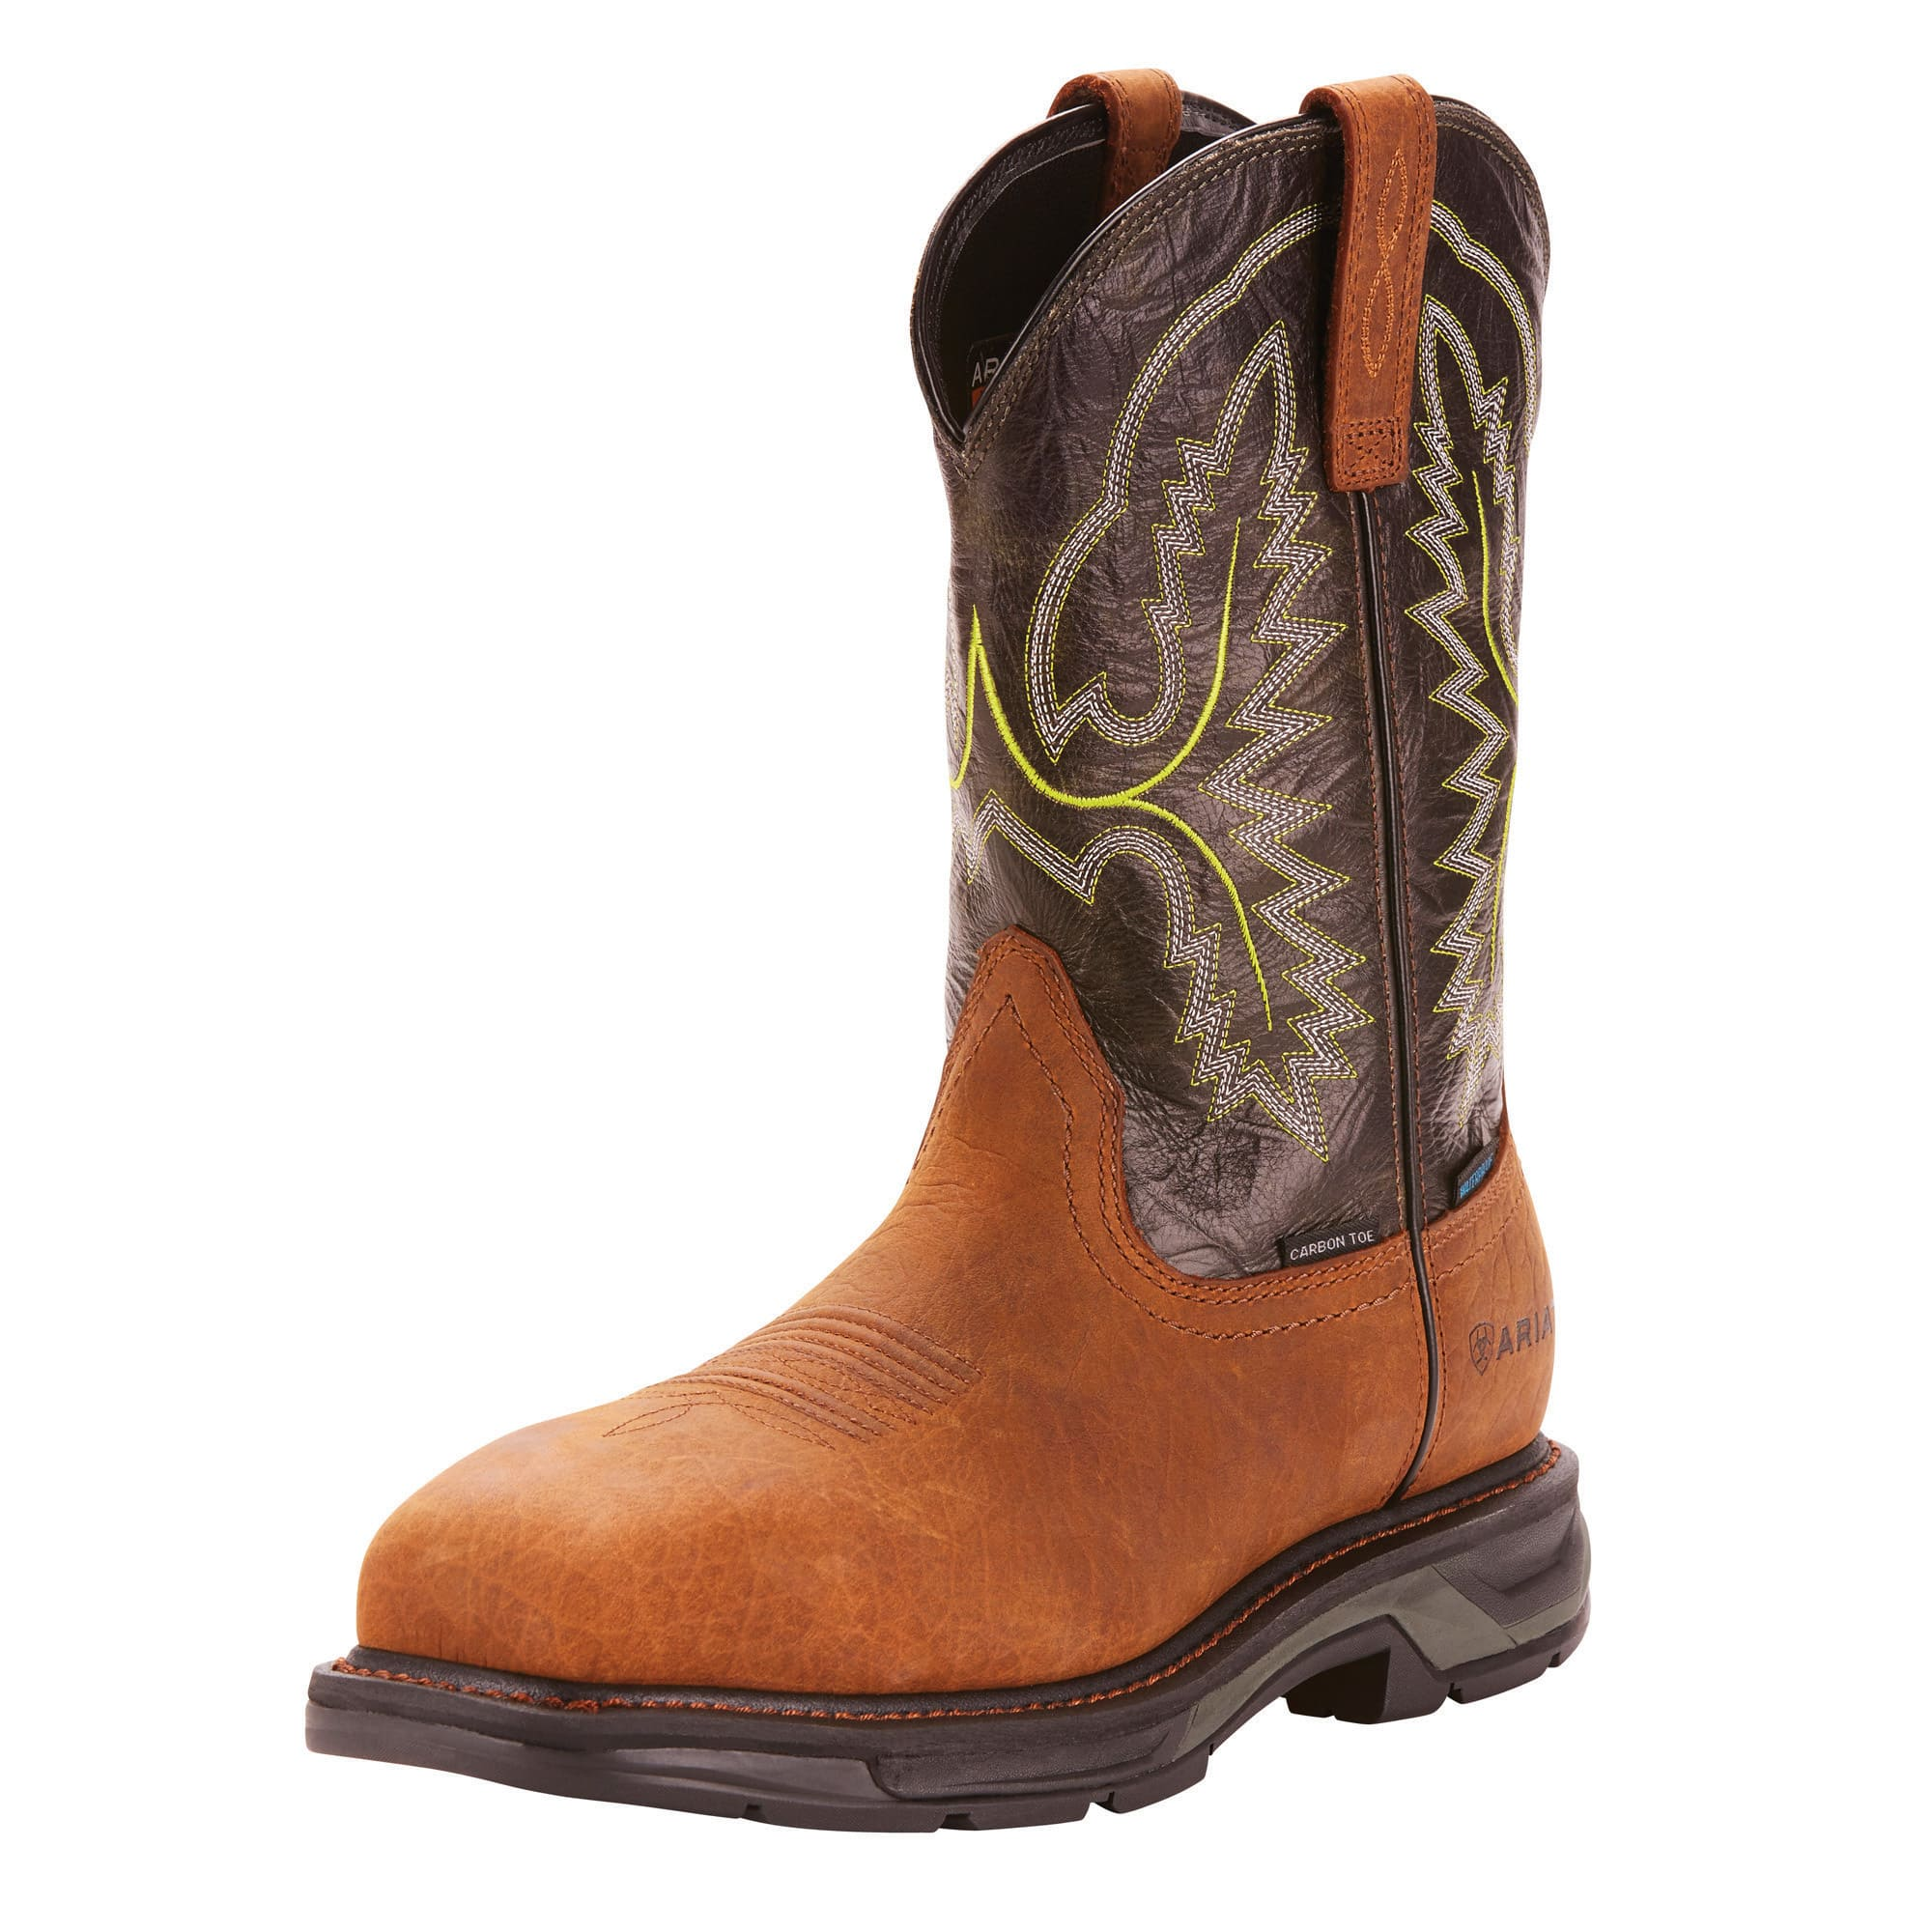 9bf019f91aa Details about Ariat 10024966 Men WorkHog XT Wide Square Toe H2O Safety  Carbon Toe Work Boots